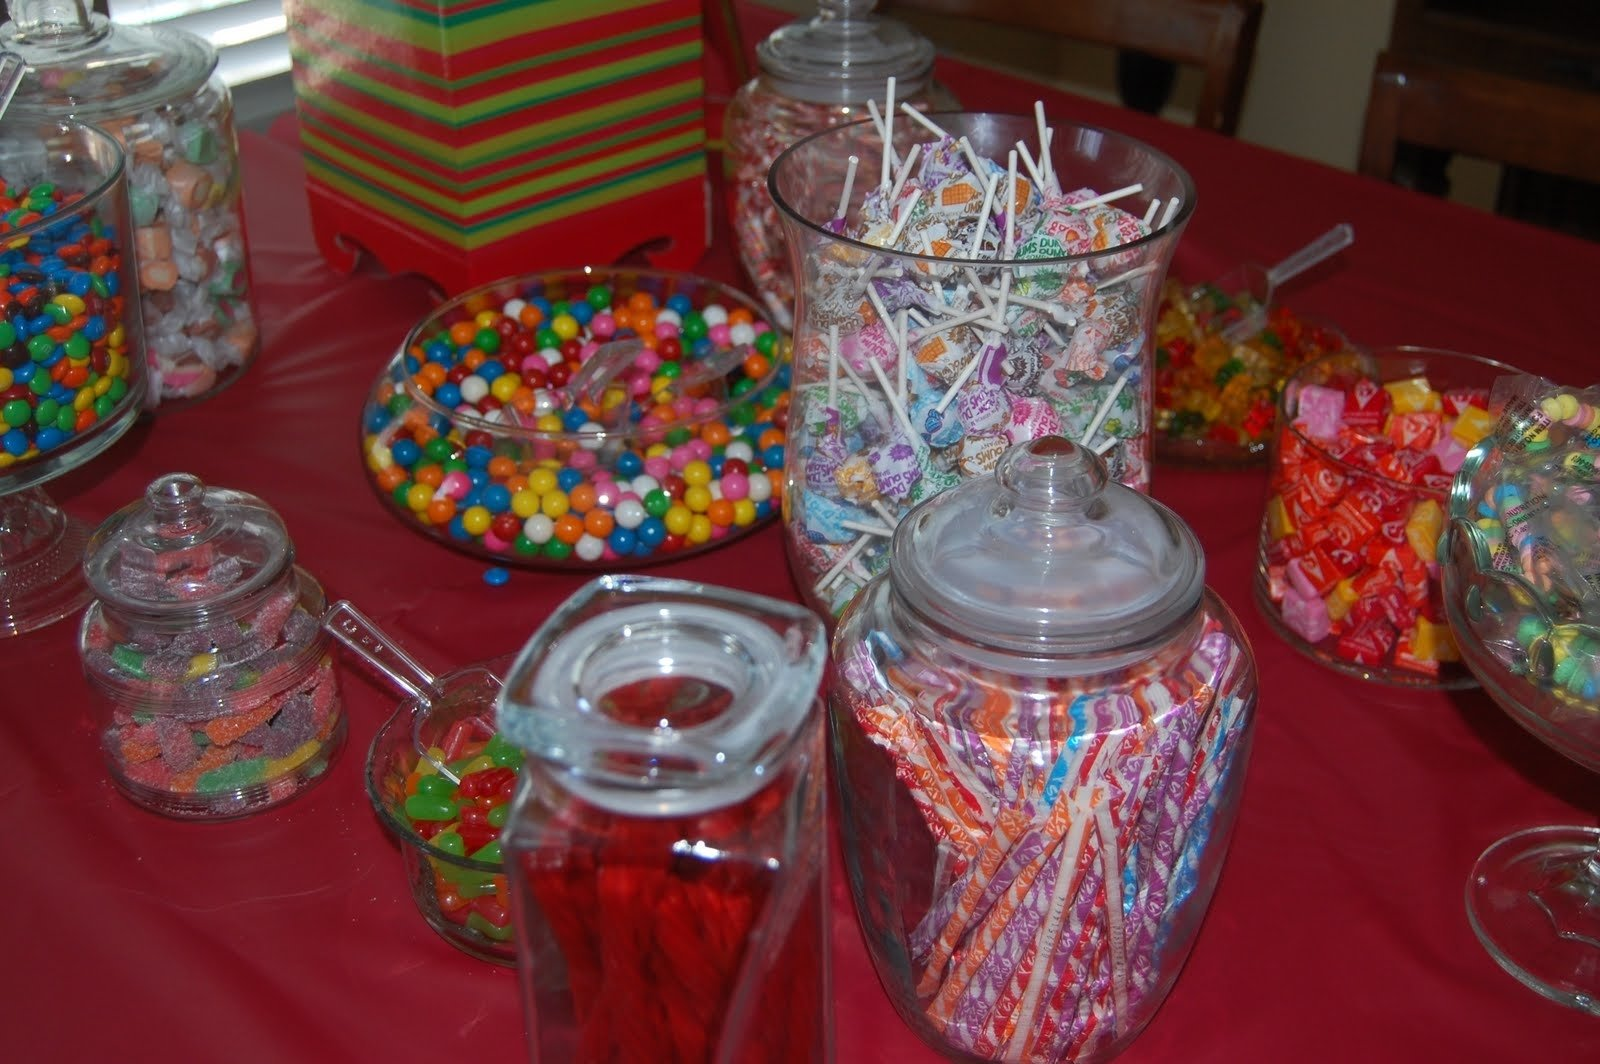 10 Ideal Candy Bar Ideas For Party bushel peck candy buffet birthday party home art decor 65481 1 2021